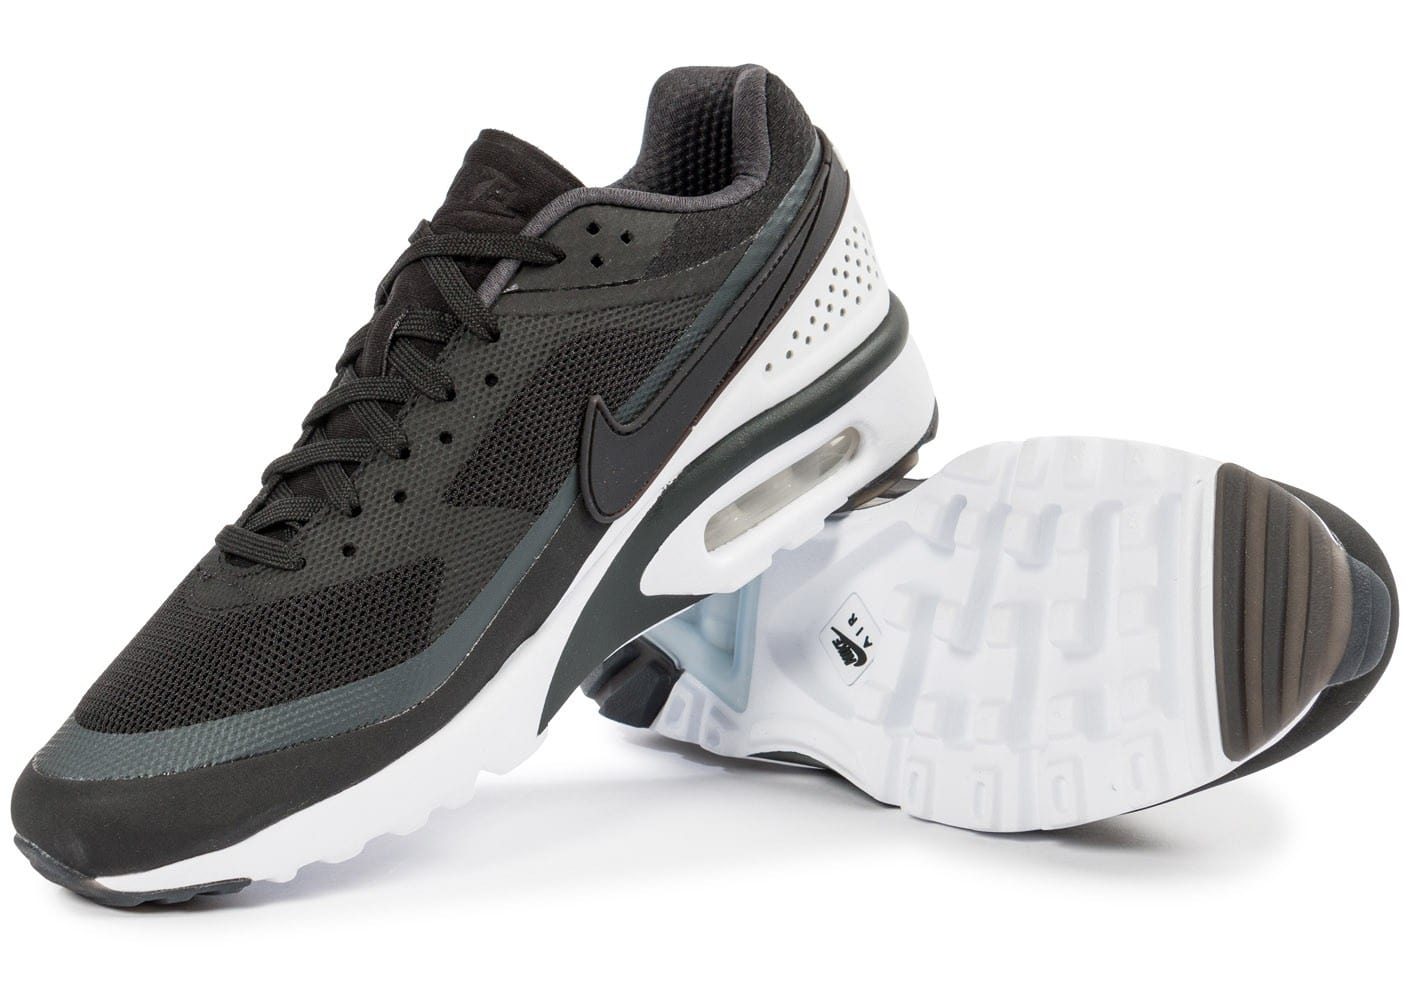 nike air max bw ultra noire et blanche chaussures homme chausport. Black Bedroom Furniture Sets. Home Design Ideas